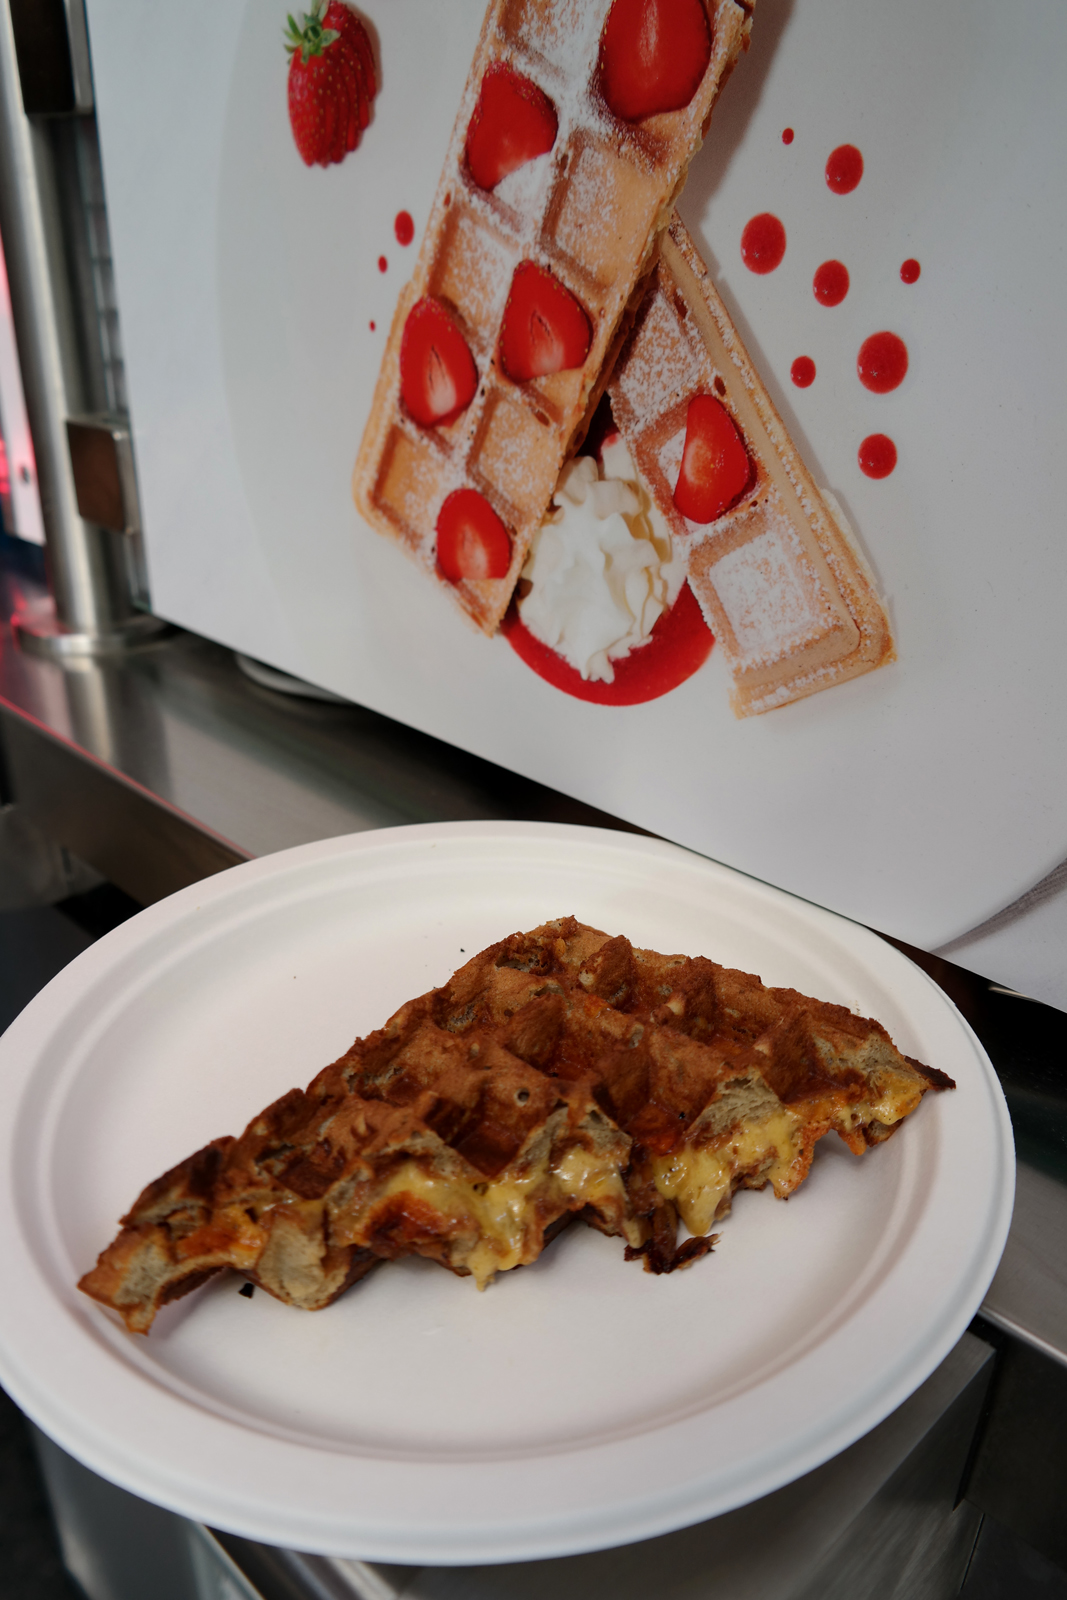 Gaufre-salée-cheddar-chutney-d-oignons-by-Les-Oublieurs-Ange-Macias-kiosque-gourmand-street-food-sur-le-pouce-boulevard-haussmann-Printemps-150-ans-photo-blog-united-states-of-paris